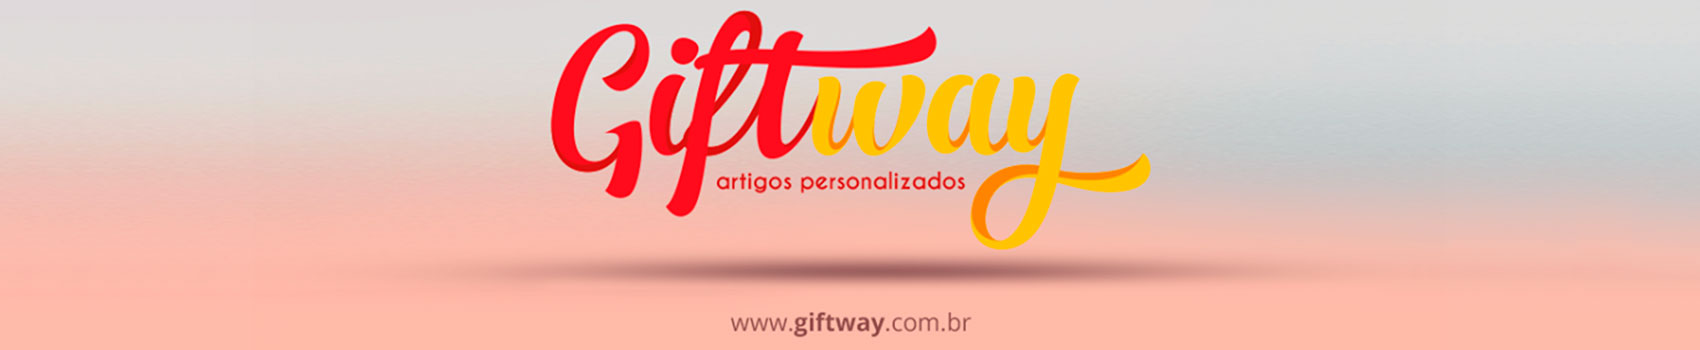 GiftWay